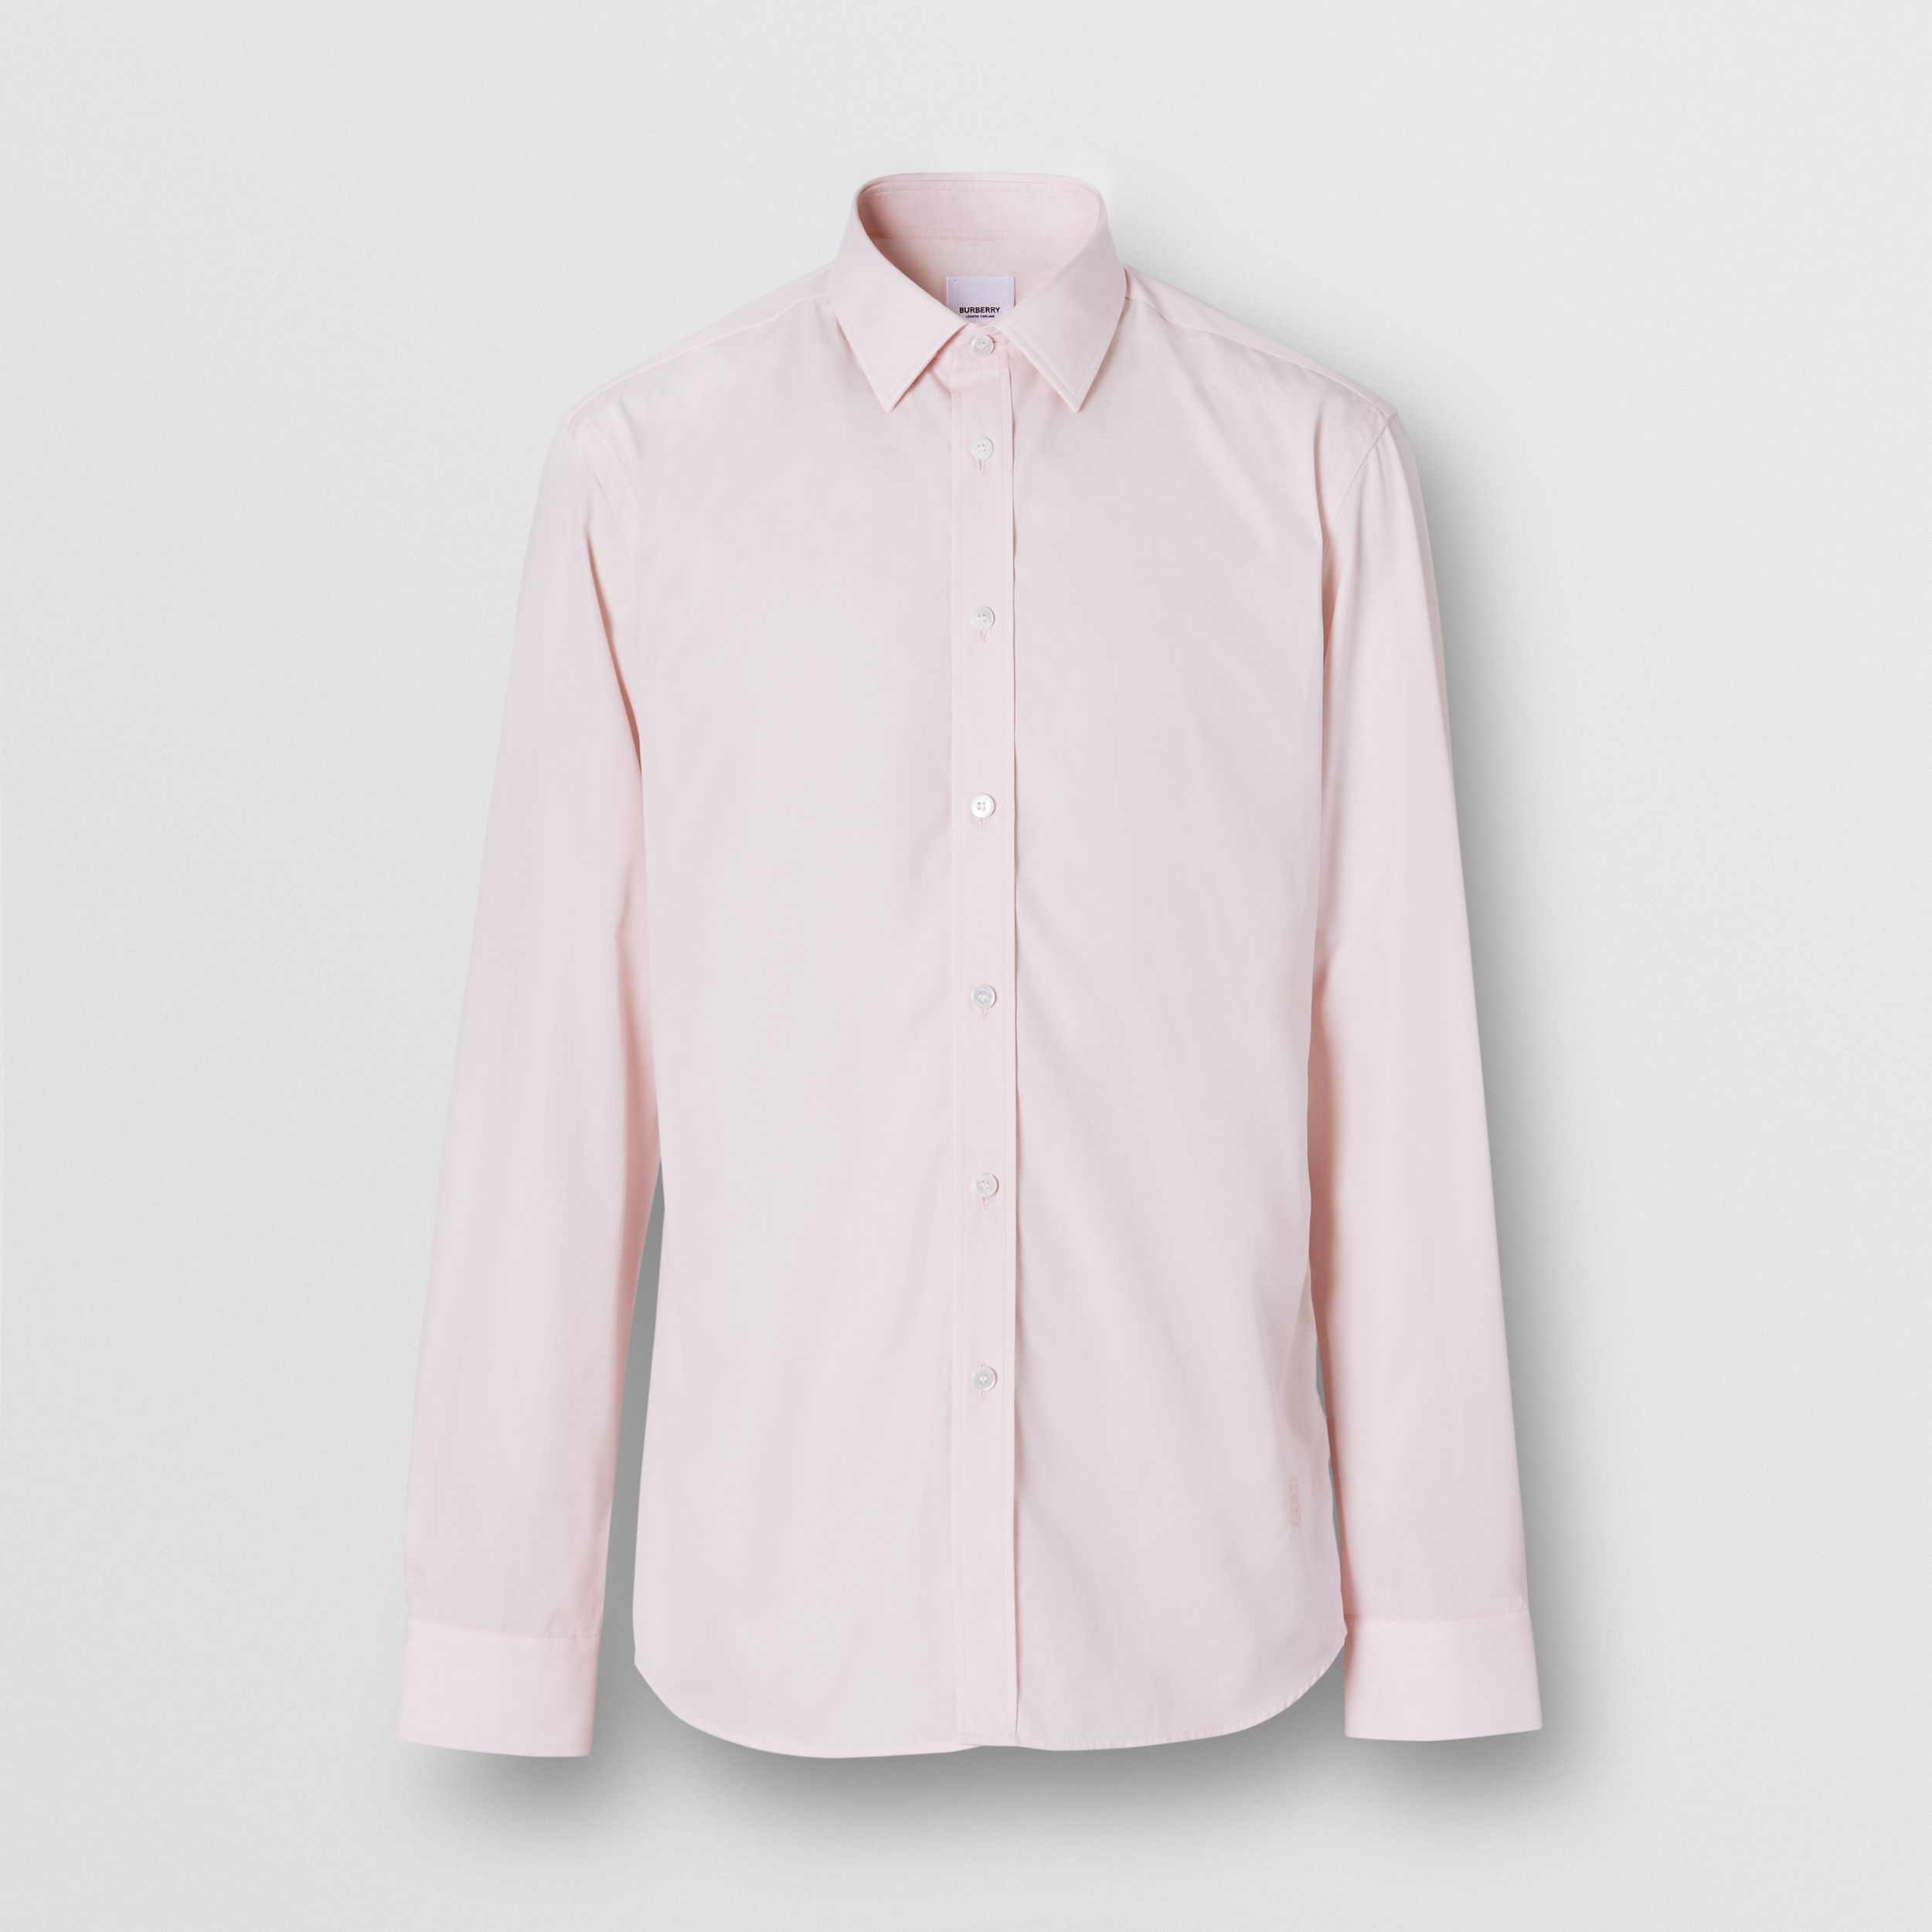 Slim Fit Monogram Motif Cotton Poplin Shirt in Alabaster Pink - Men | Burberry - 4